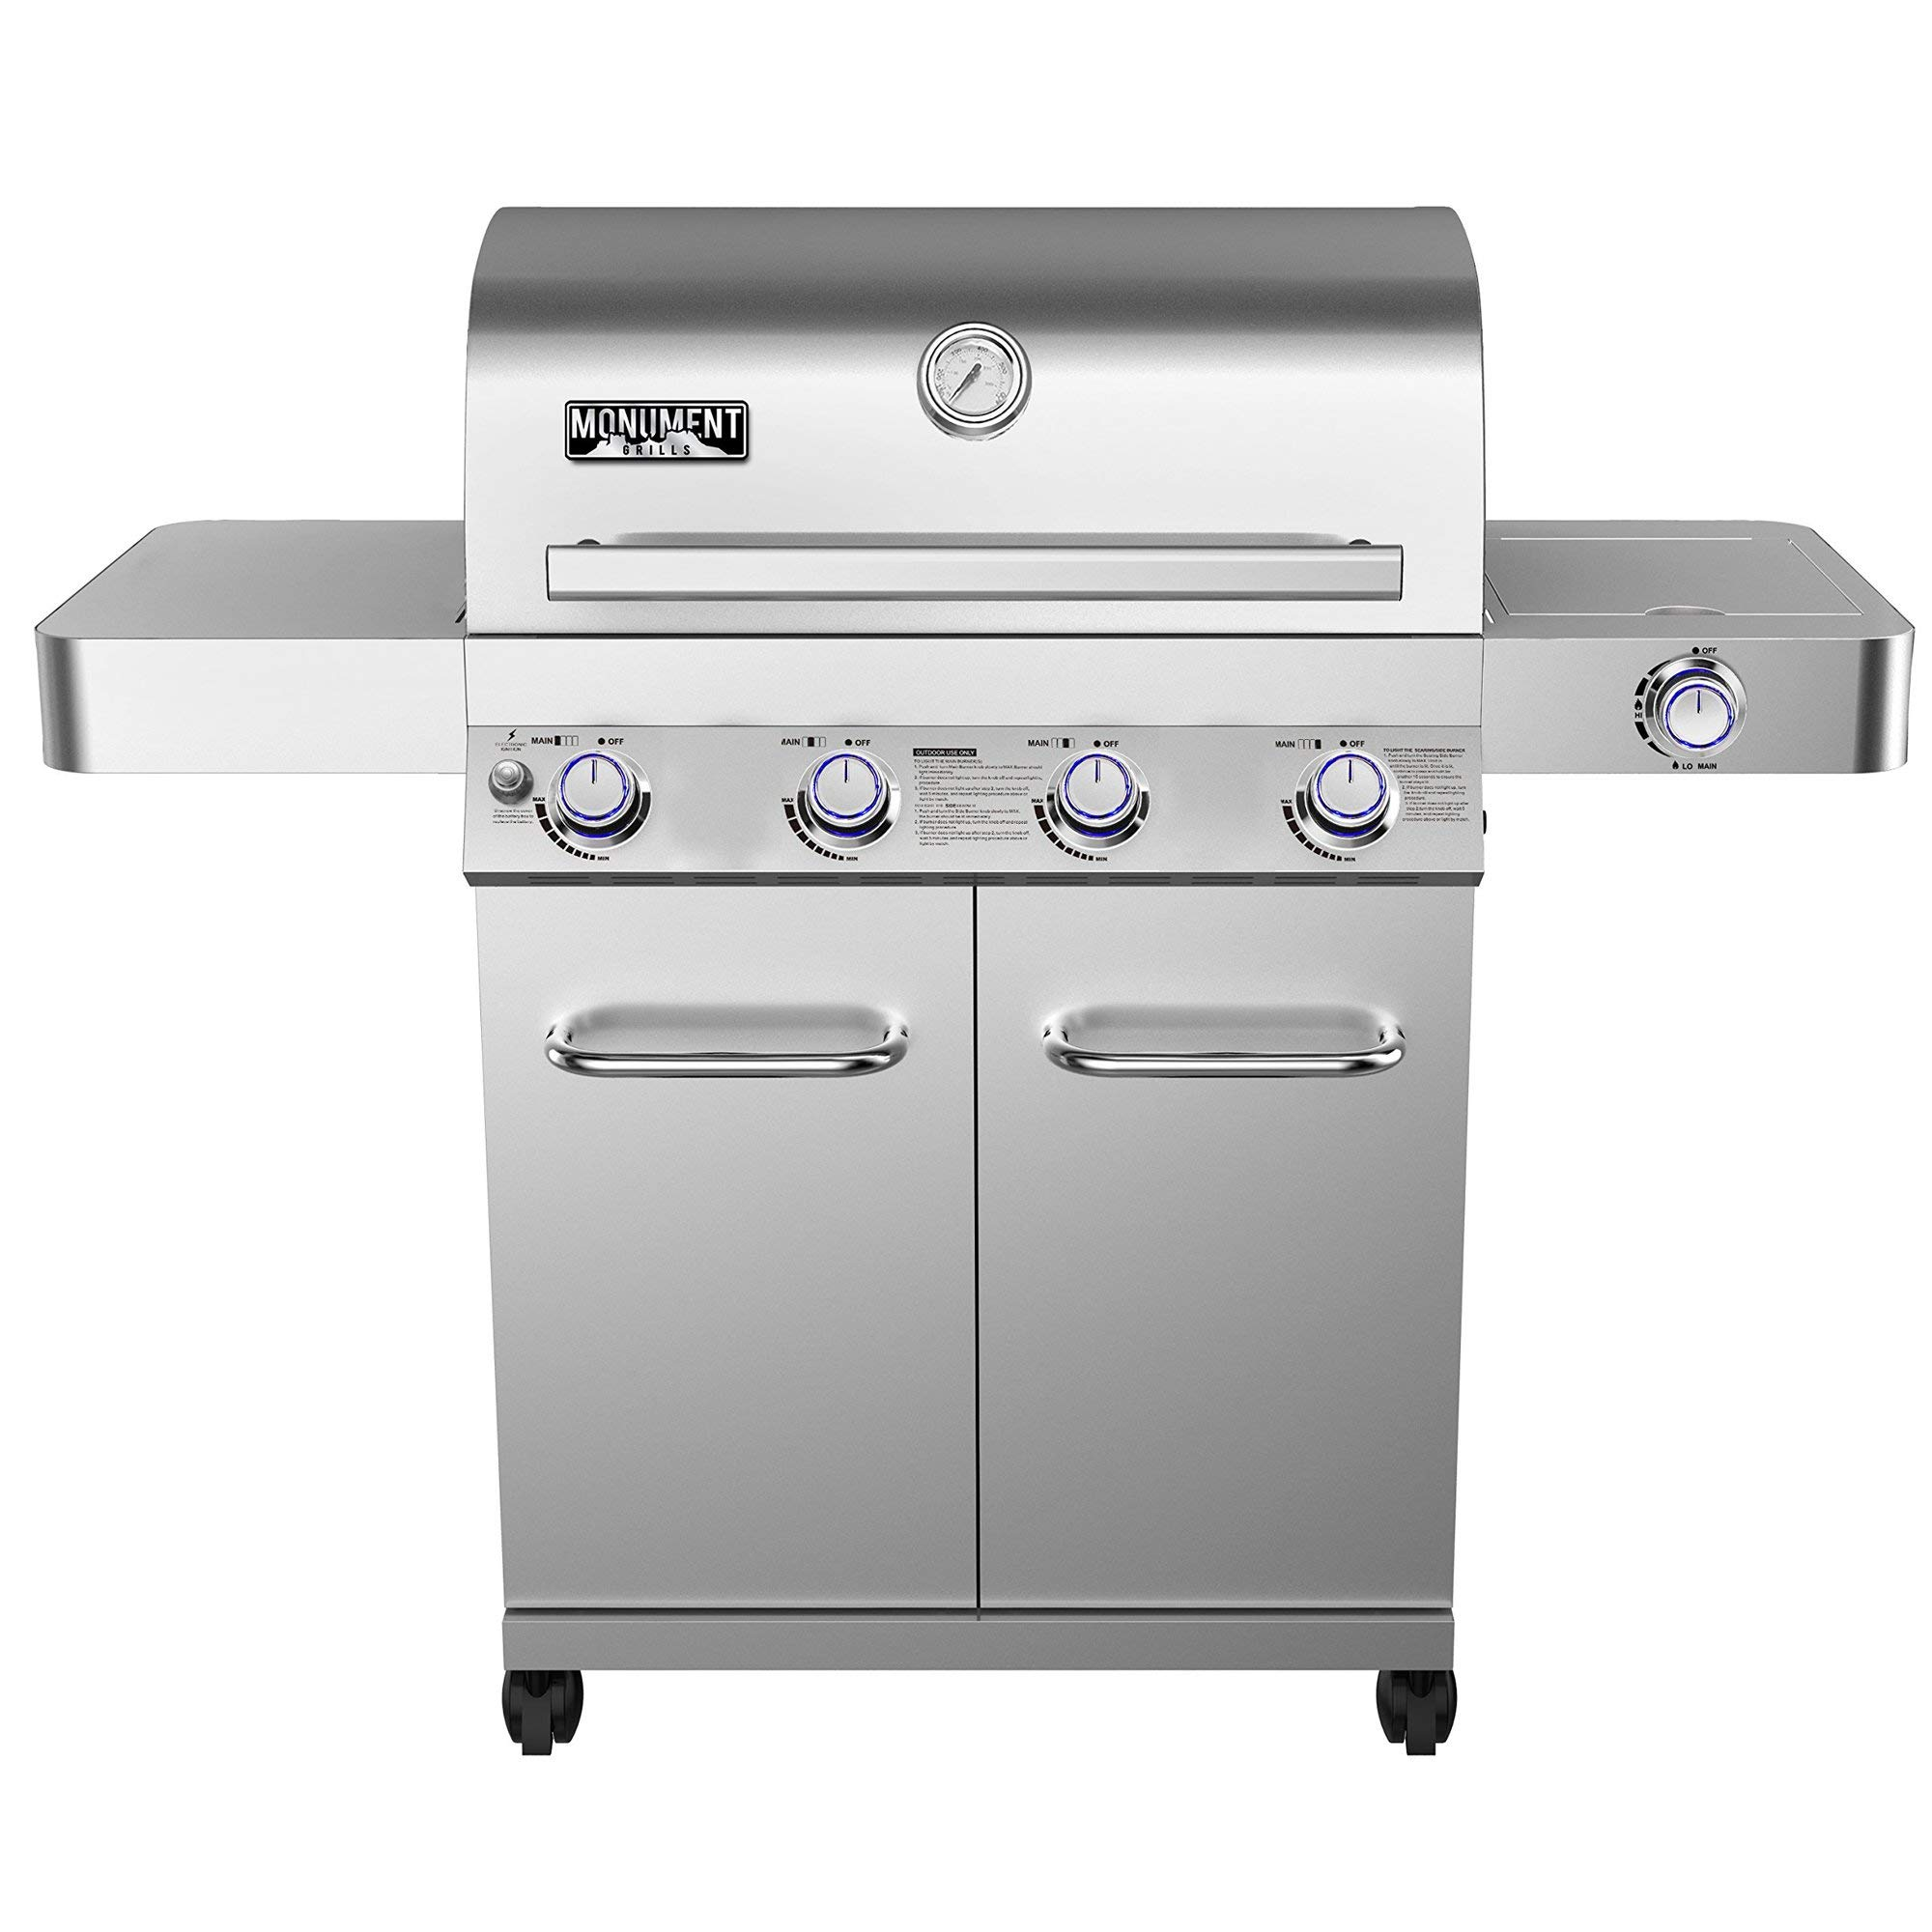 Monument Grills Stainless Steel 4-Burner Gas Grill w/Rotisserire